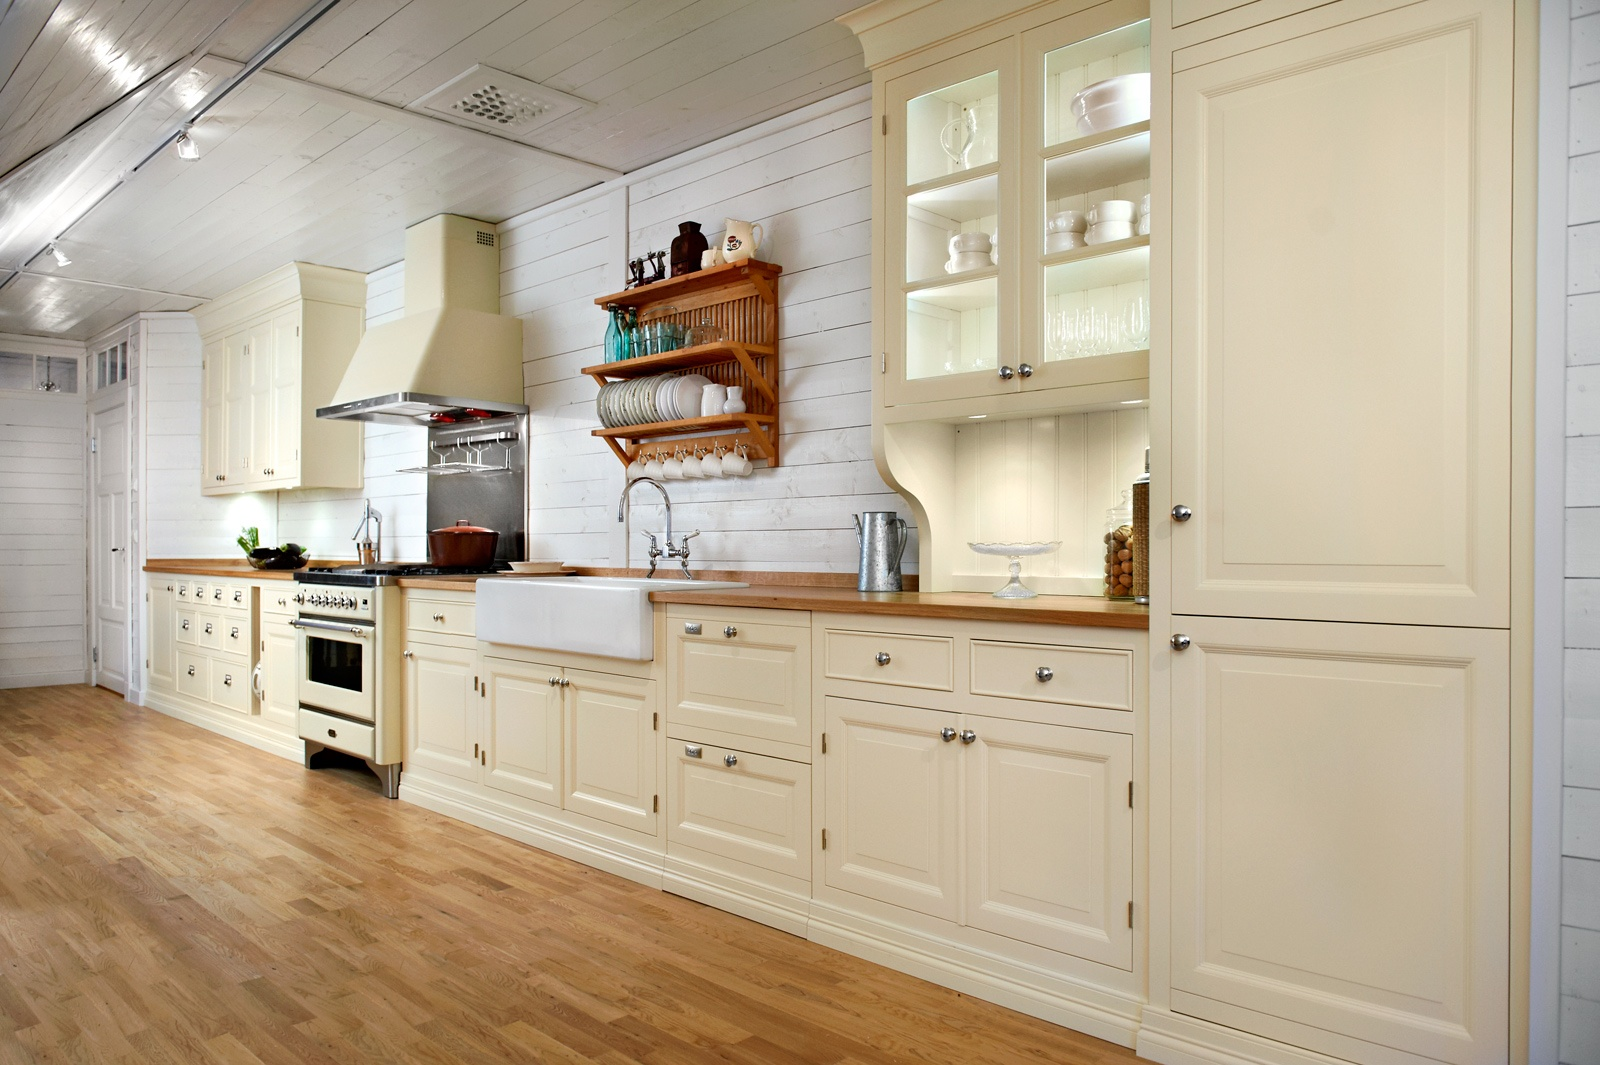 kitchen track lighting ideas. Traditional Kitchen Lighting Track Ideas